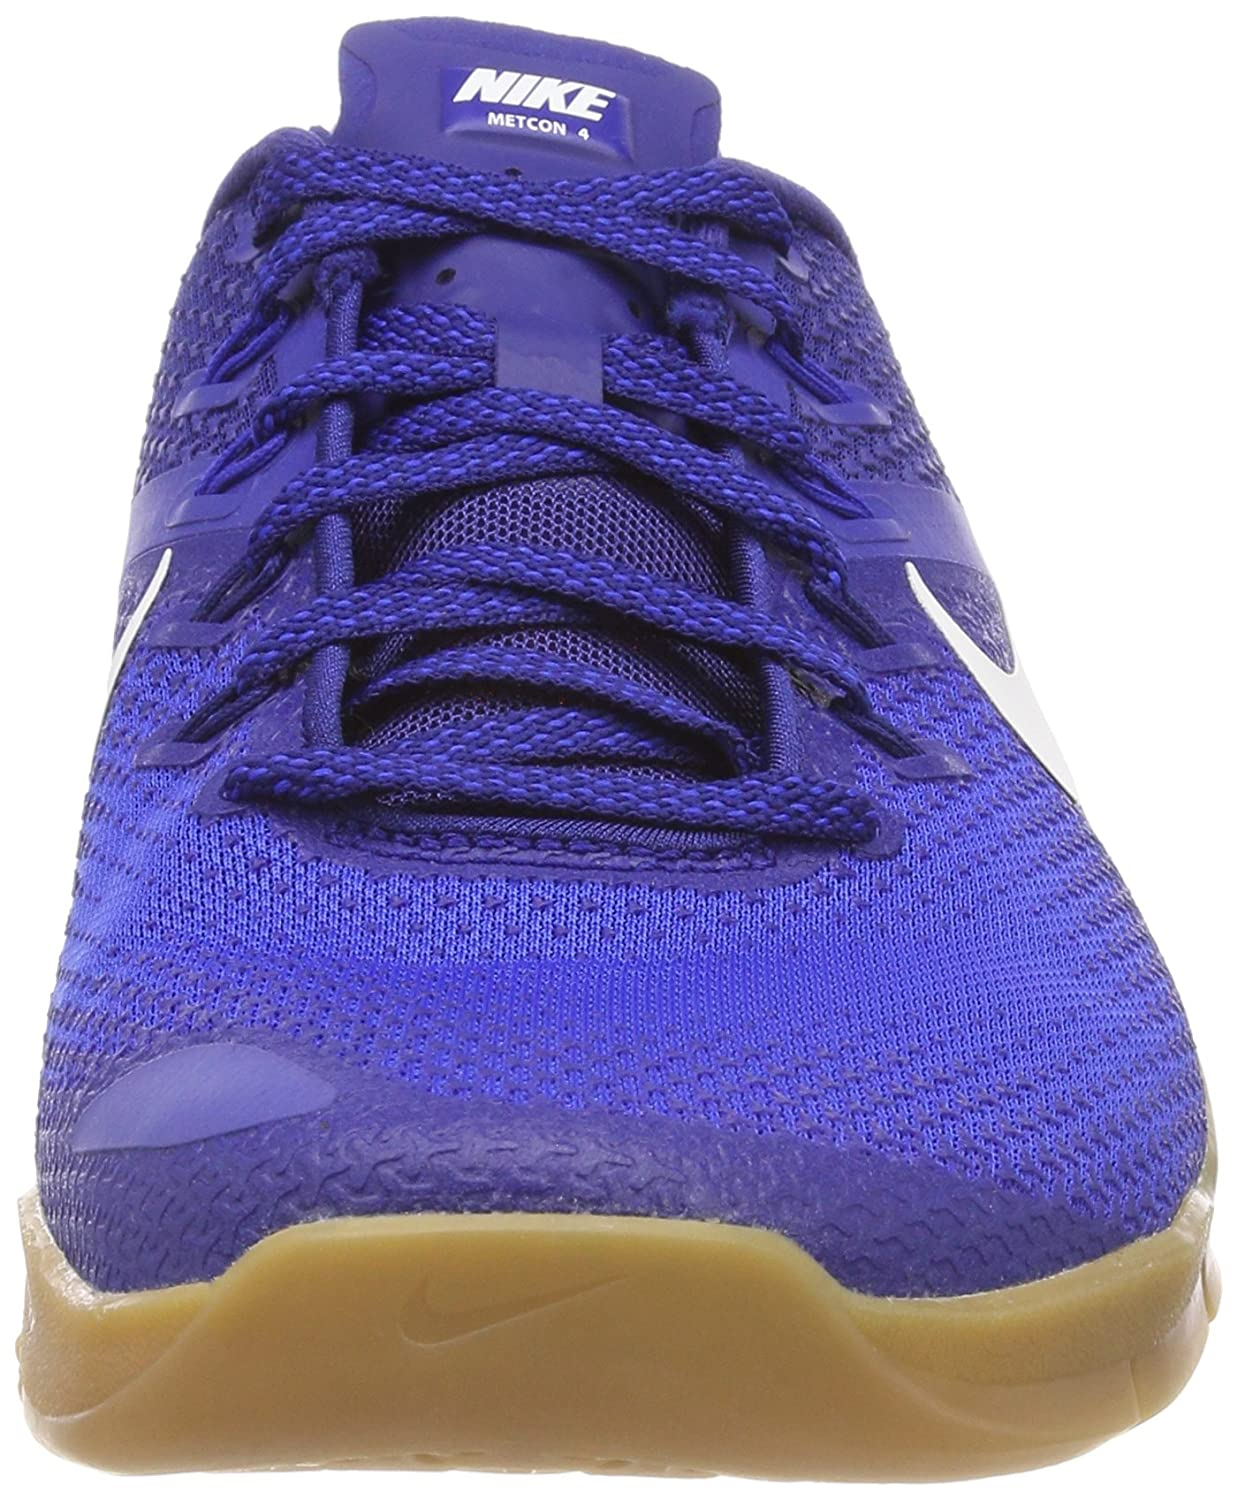 new concept 73612 8f2ec Nike Men s Metcon 4 Fitness Shoes  Amazon.co.uk  Shoes   Bags